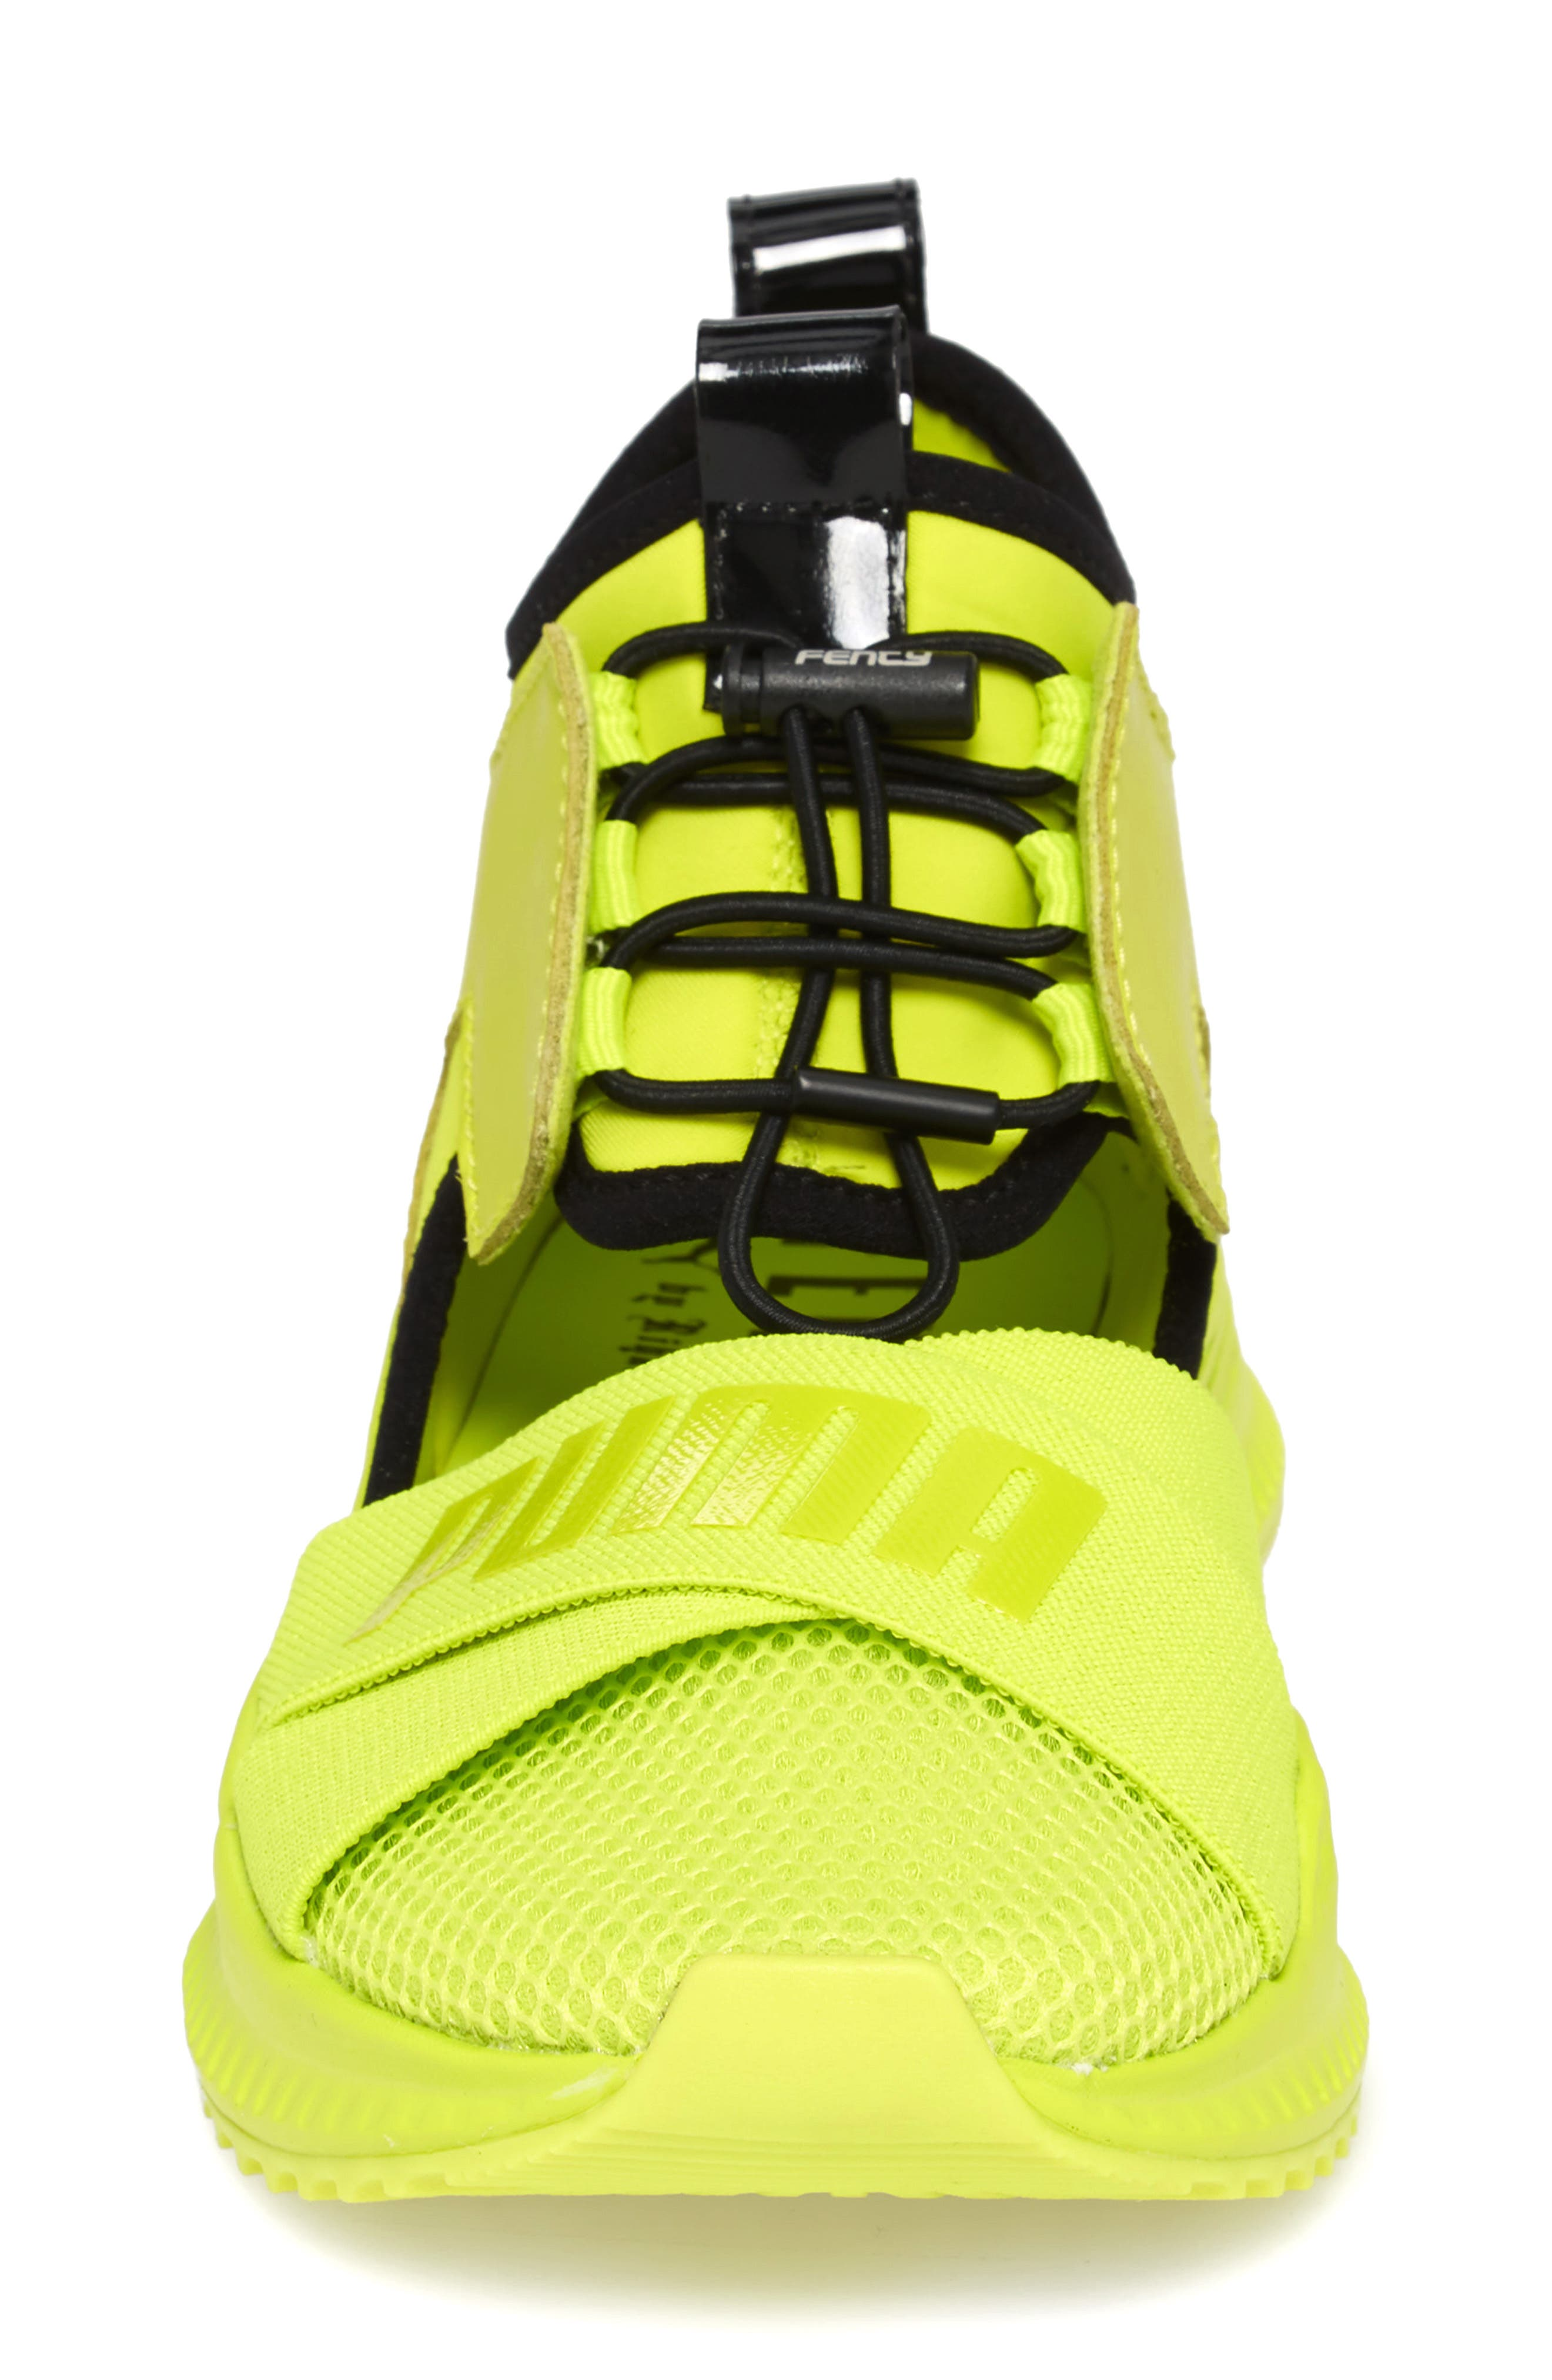 FENTY PUMA by Rihanna Avid Sneaker,                             Alternate thumbnail 4, color,                             Lime Punch/ Black/ Lime Punch